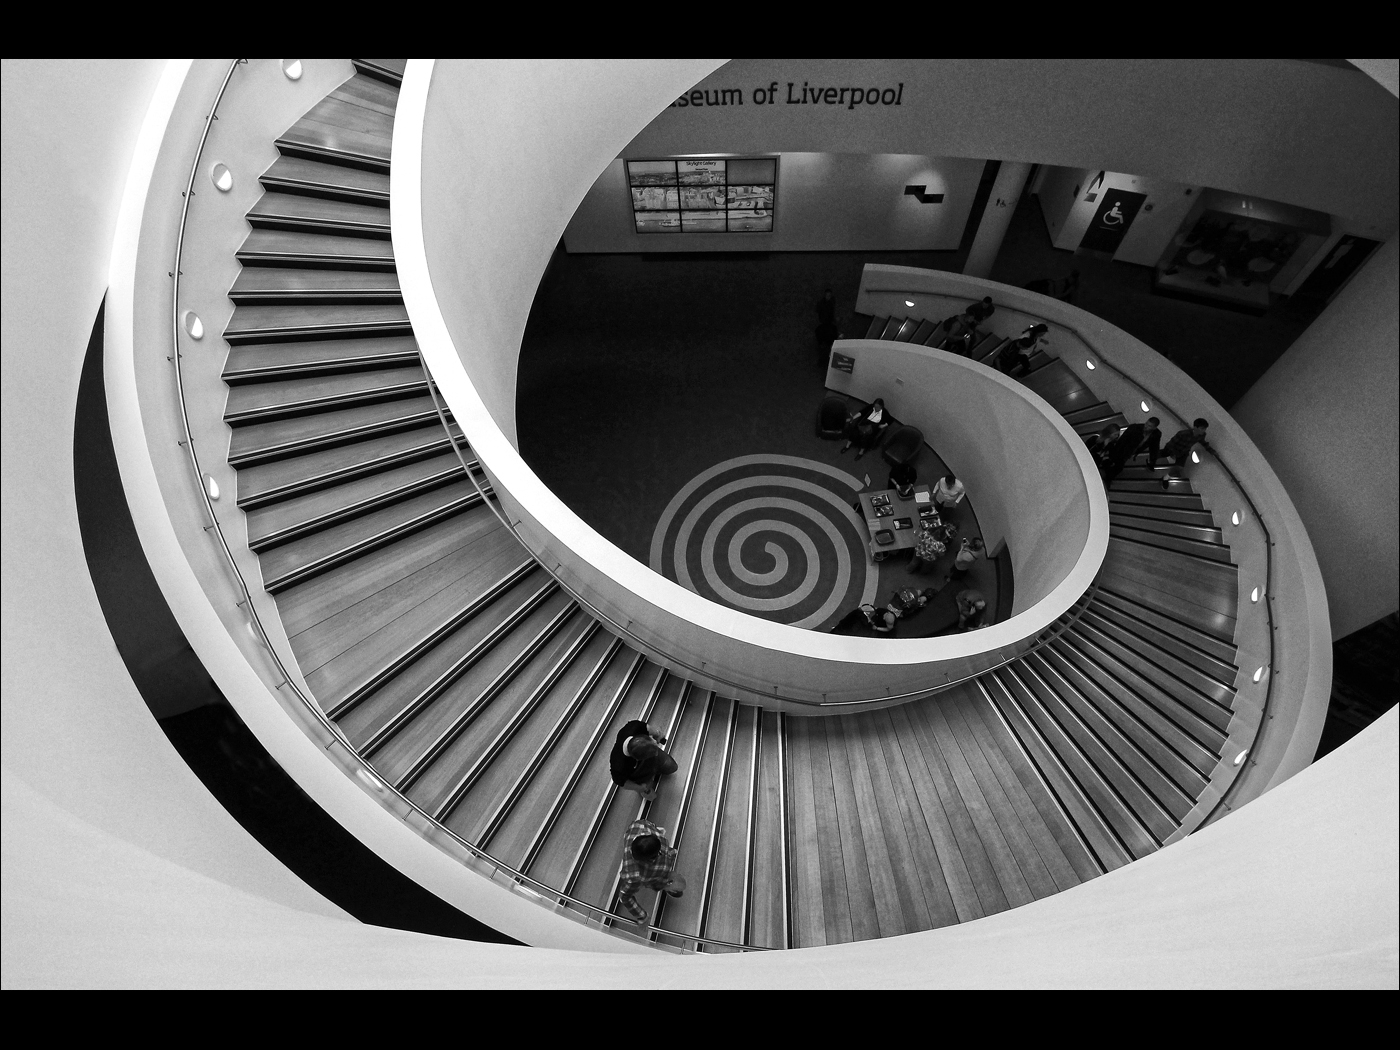 10_Anne-Marie Imeson_Stairway Museum of Liverpool